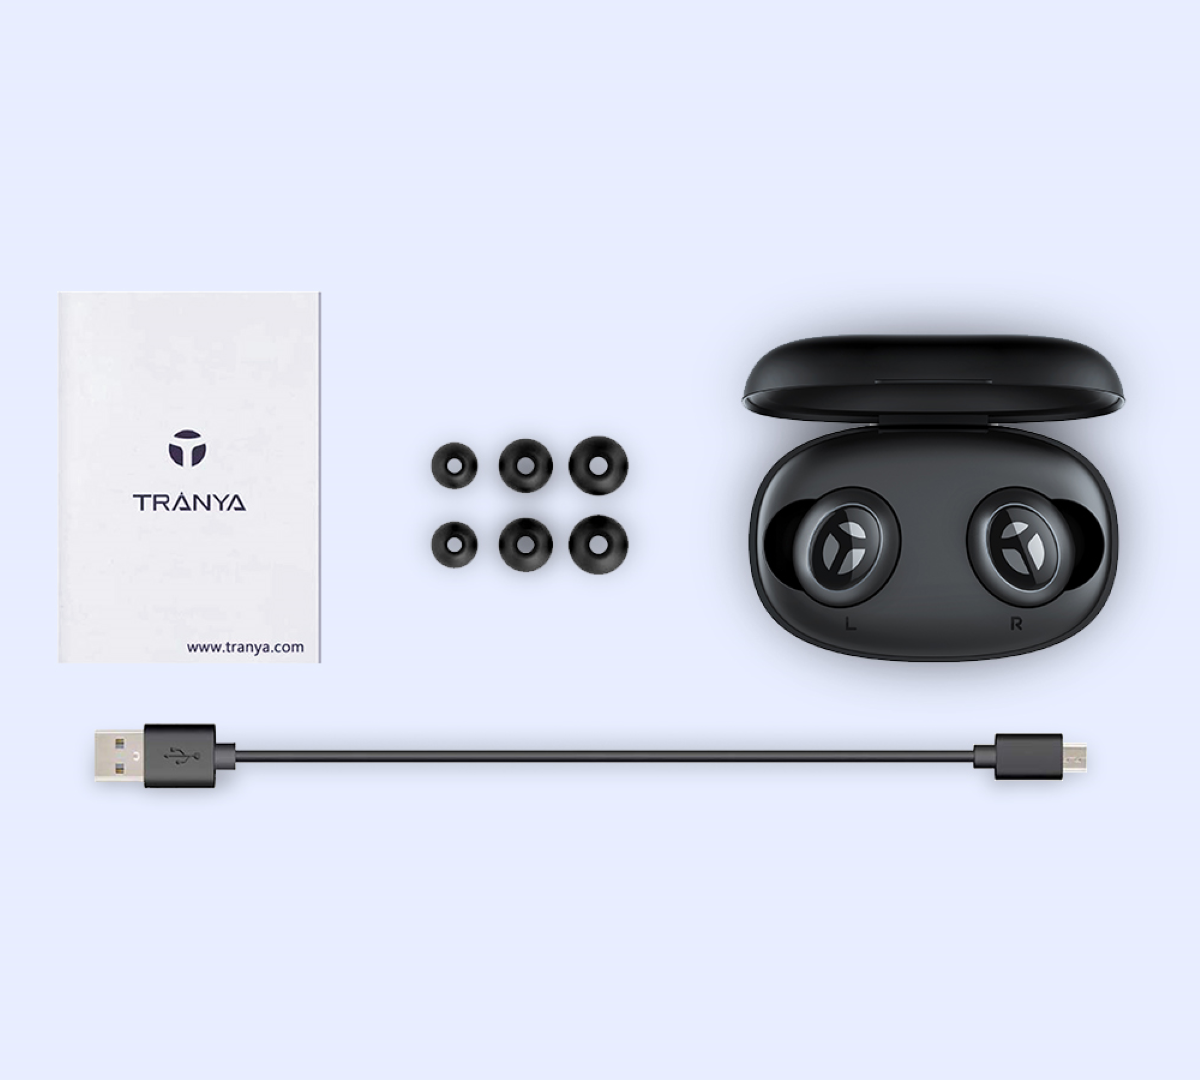 Tranya Rimor Bluetooth Earphones, Tranya Rimor Wireless Earbuds Review